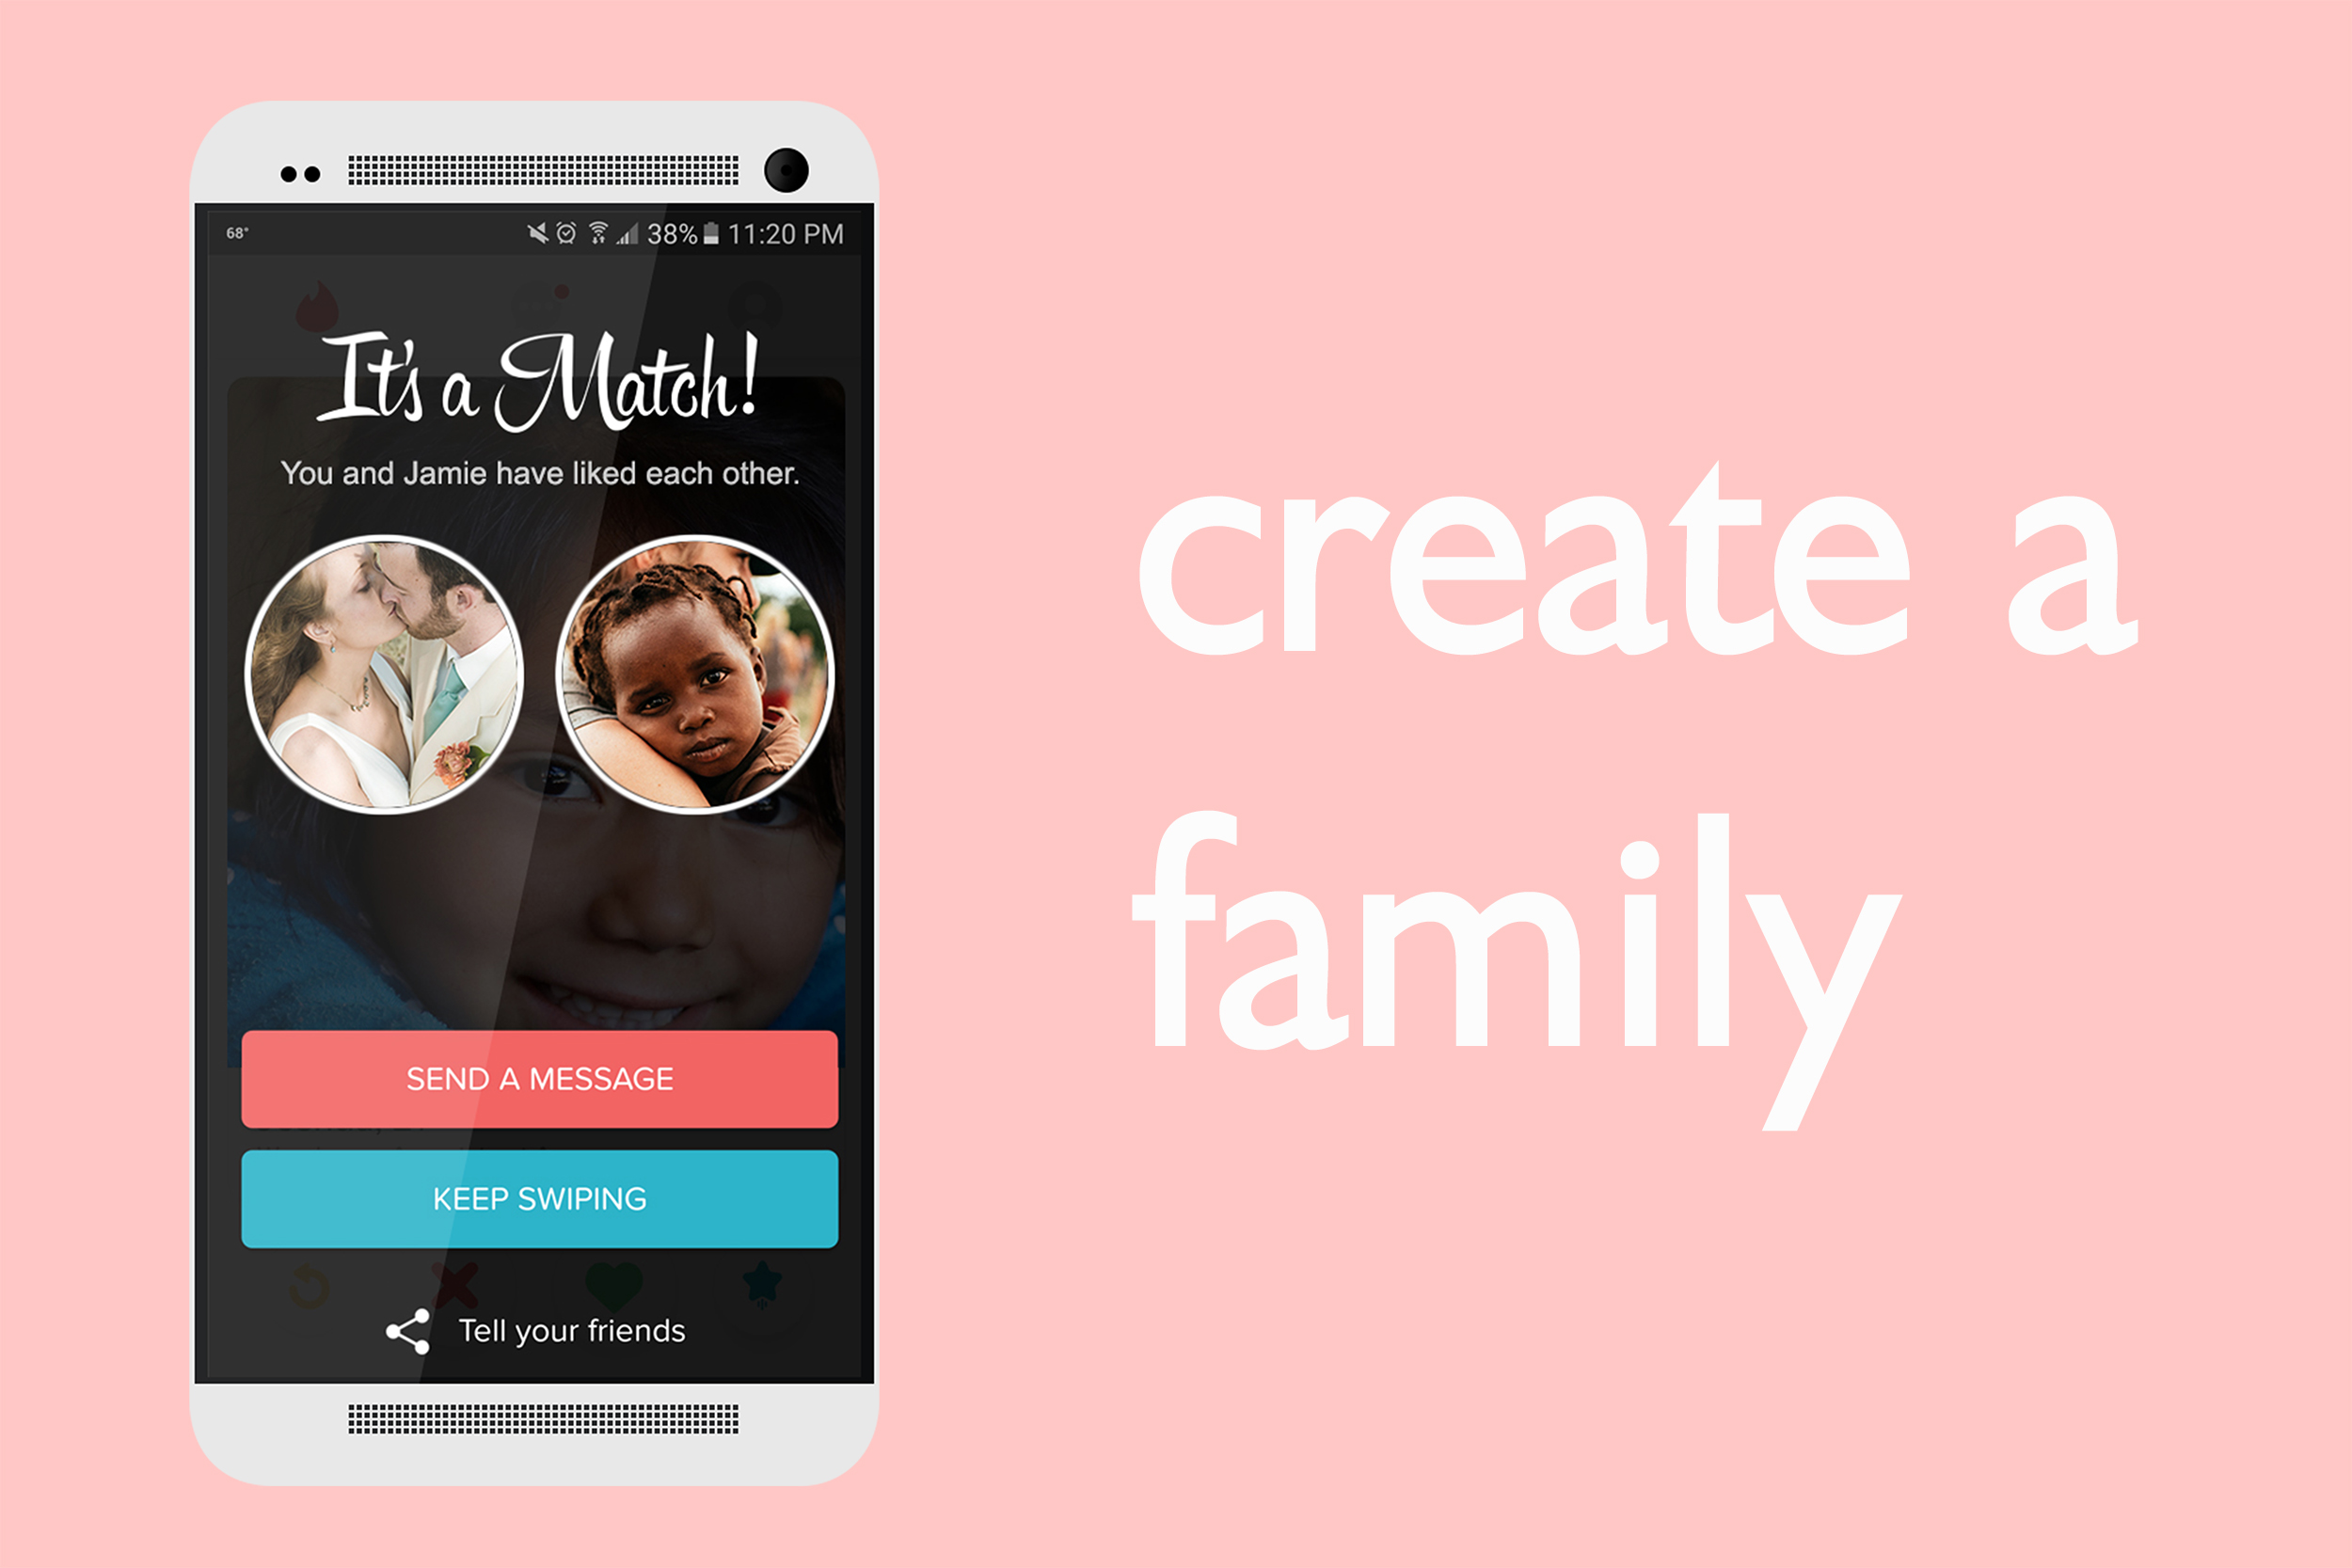 create-family-small-whitw